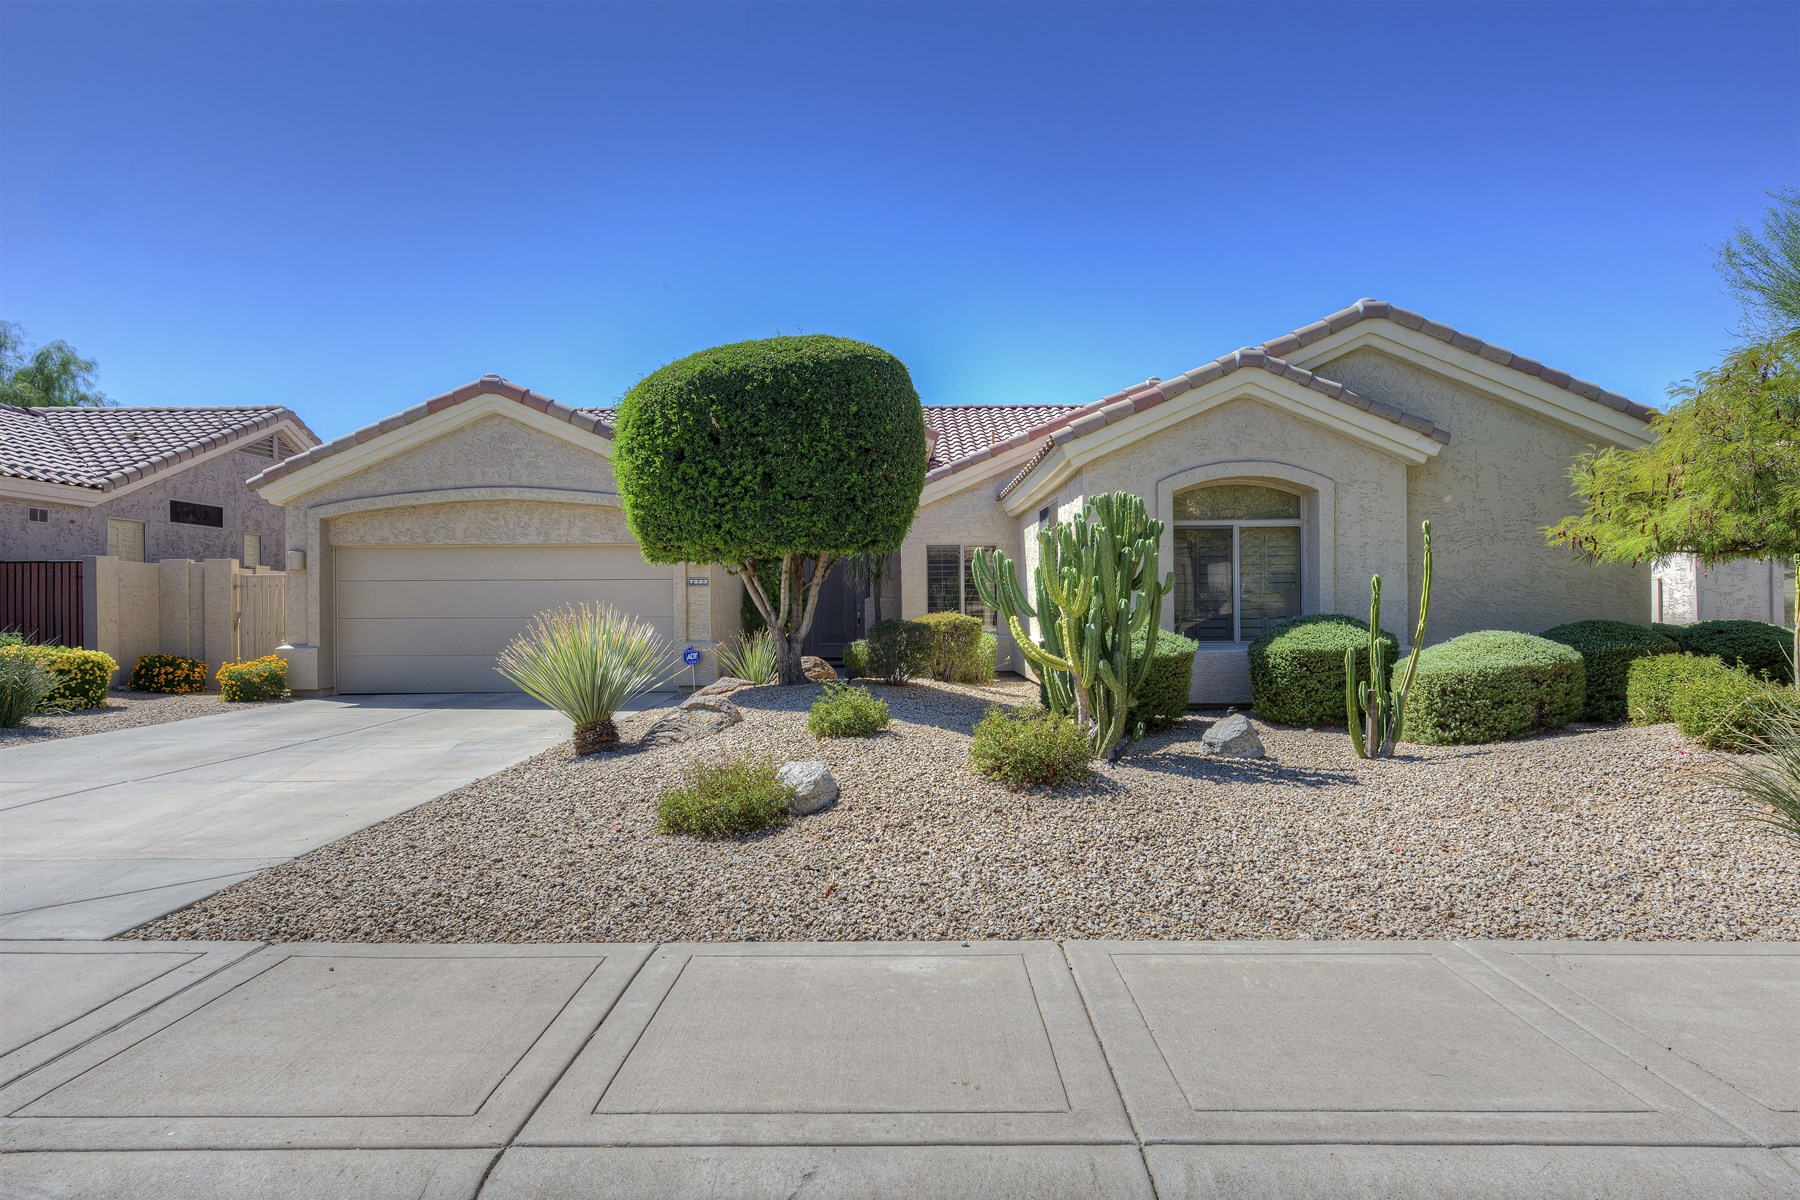 Property For Sale at Lovingly cared for home in Grayhawk.